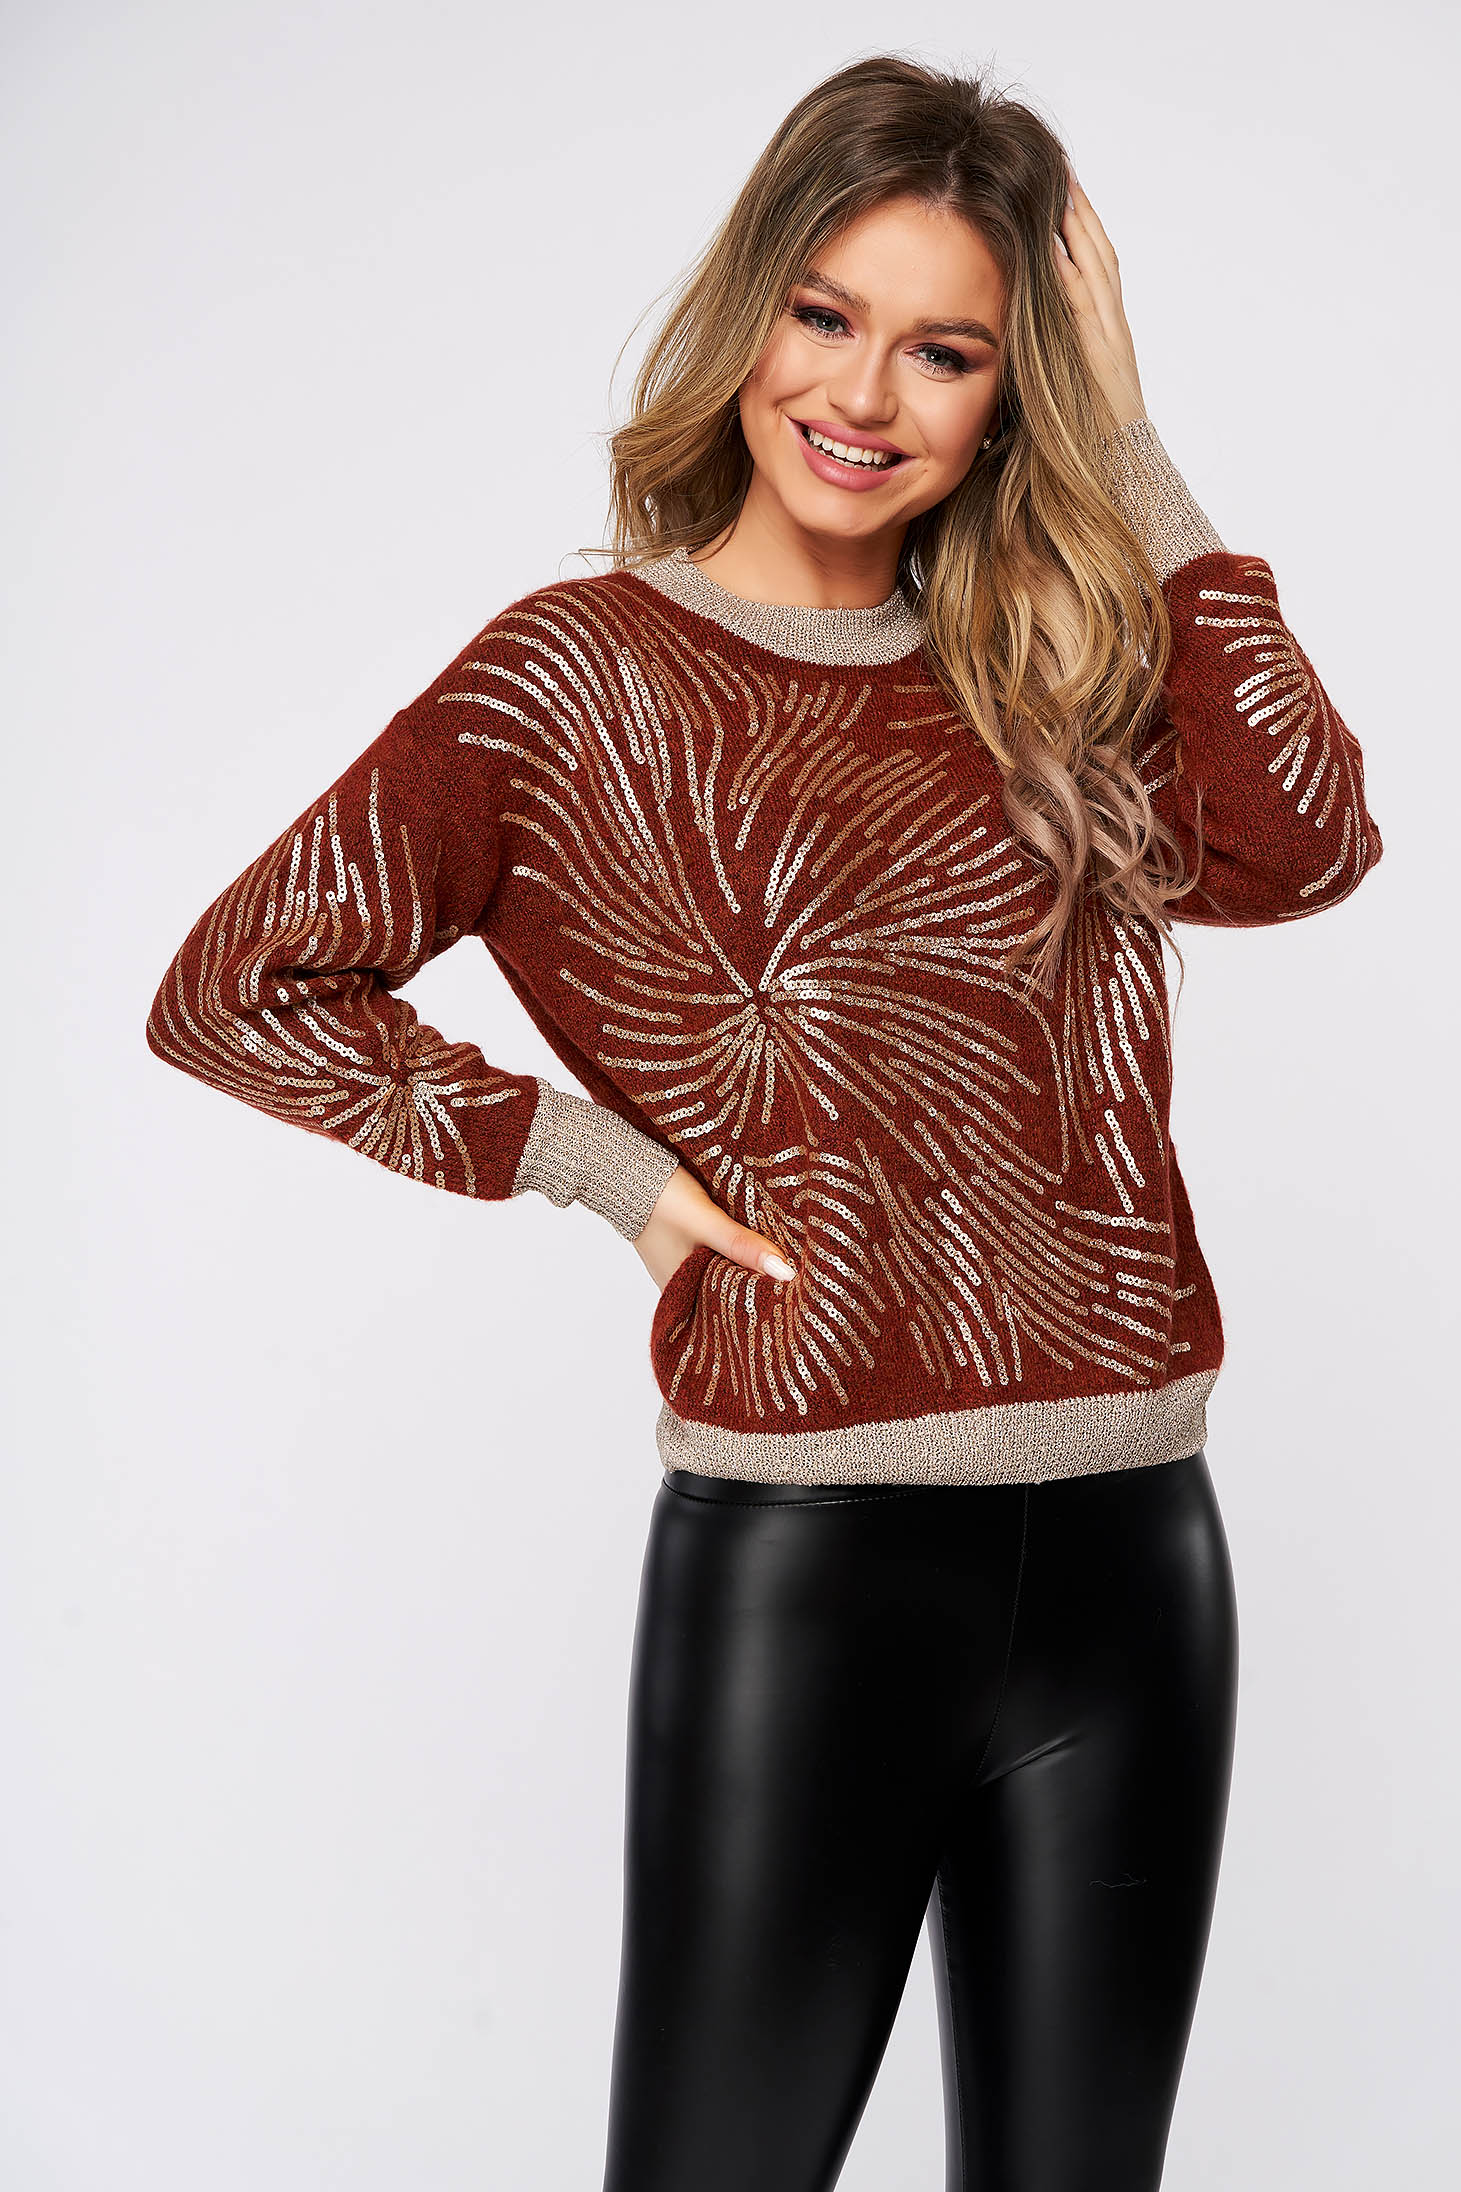 Bricky sweater casual short cut flared knitted with sequin embellished details neckline